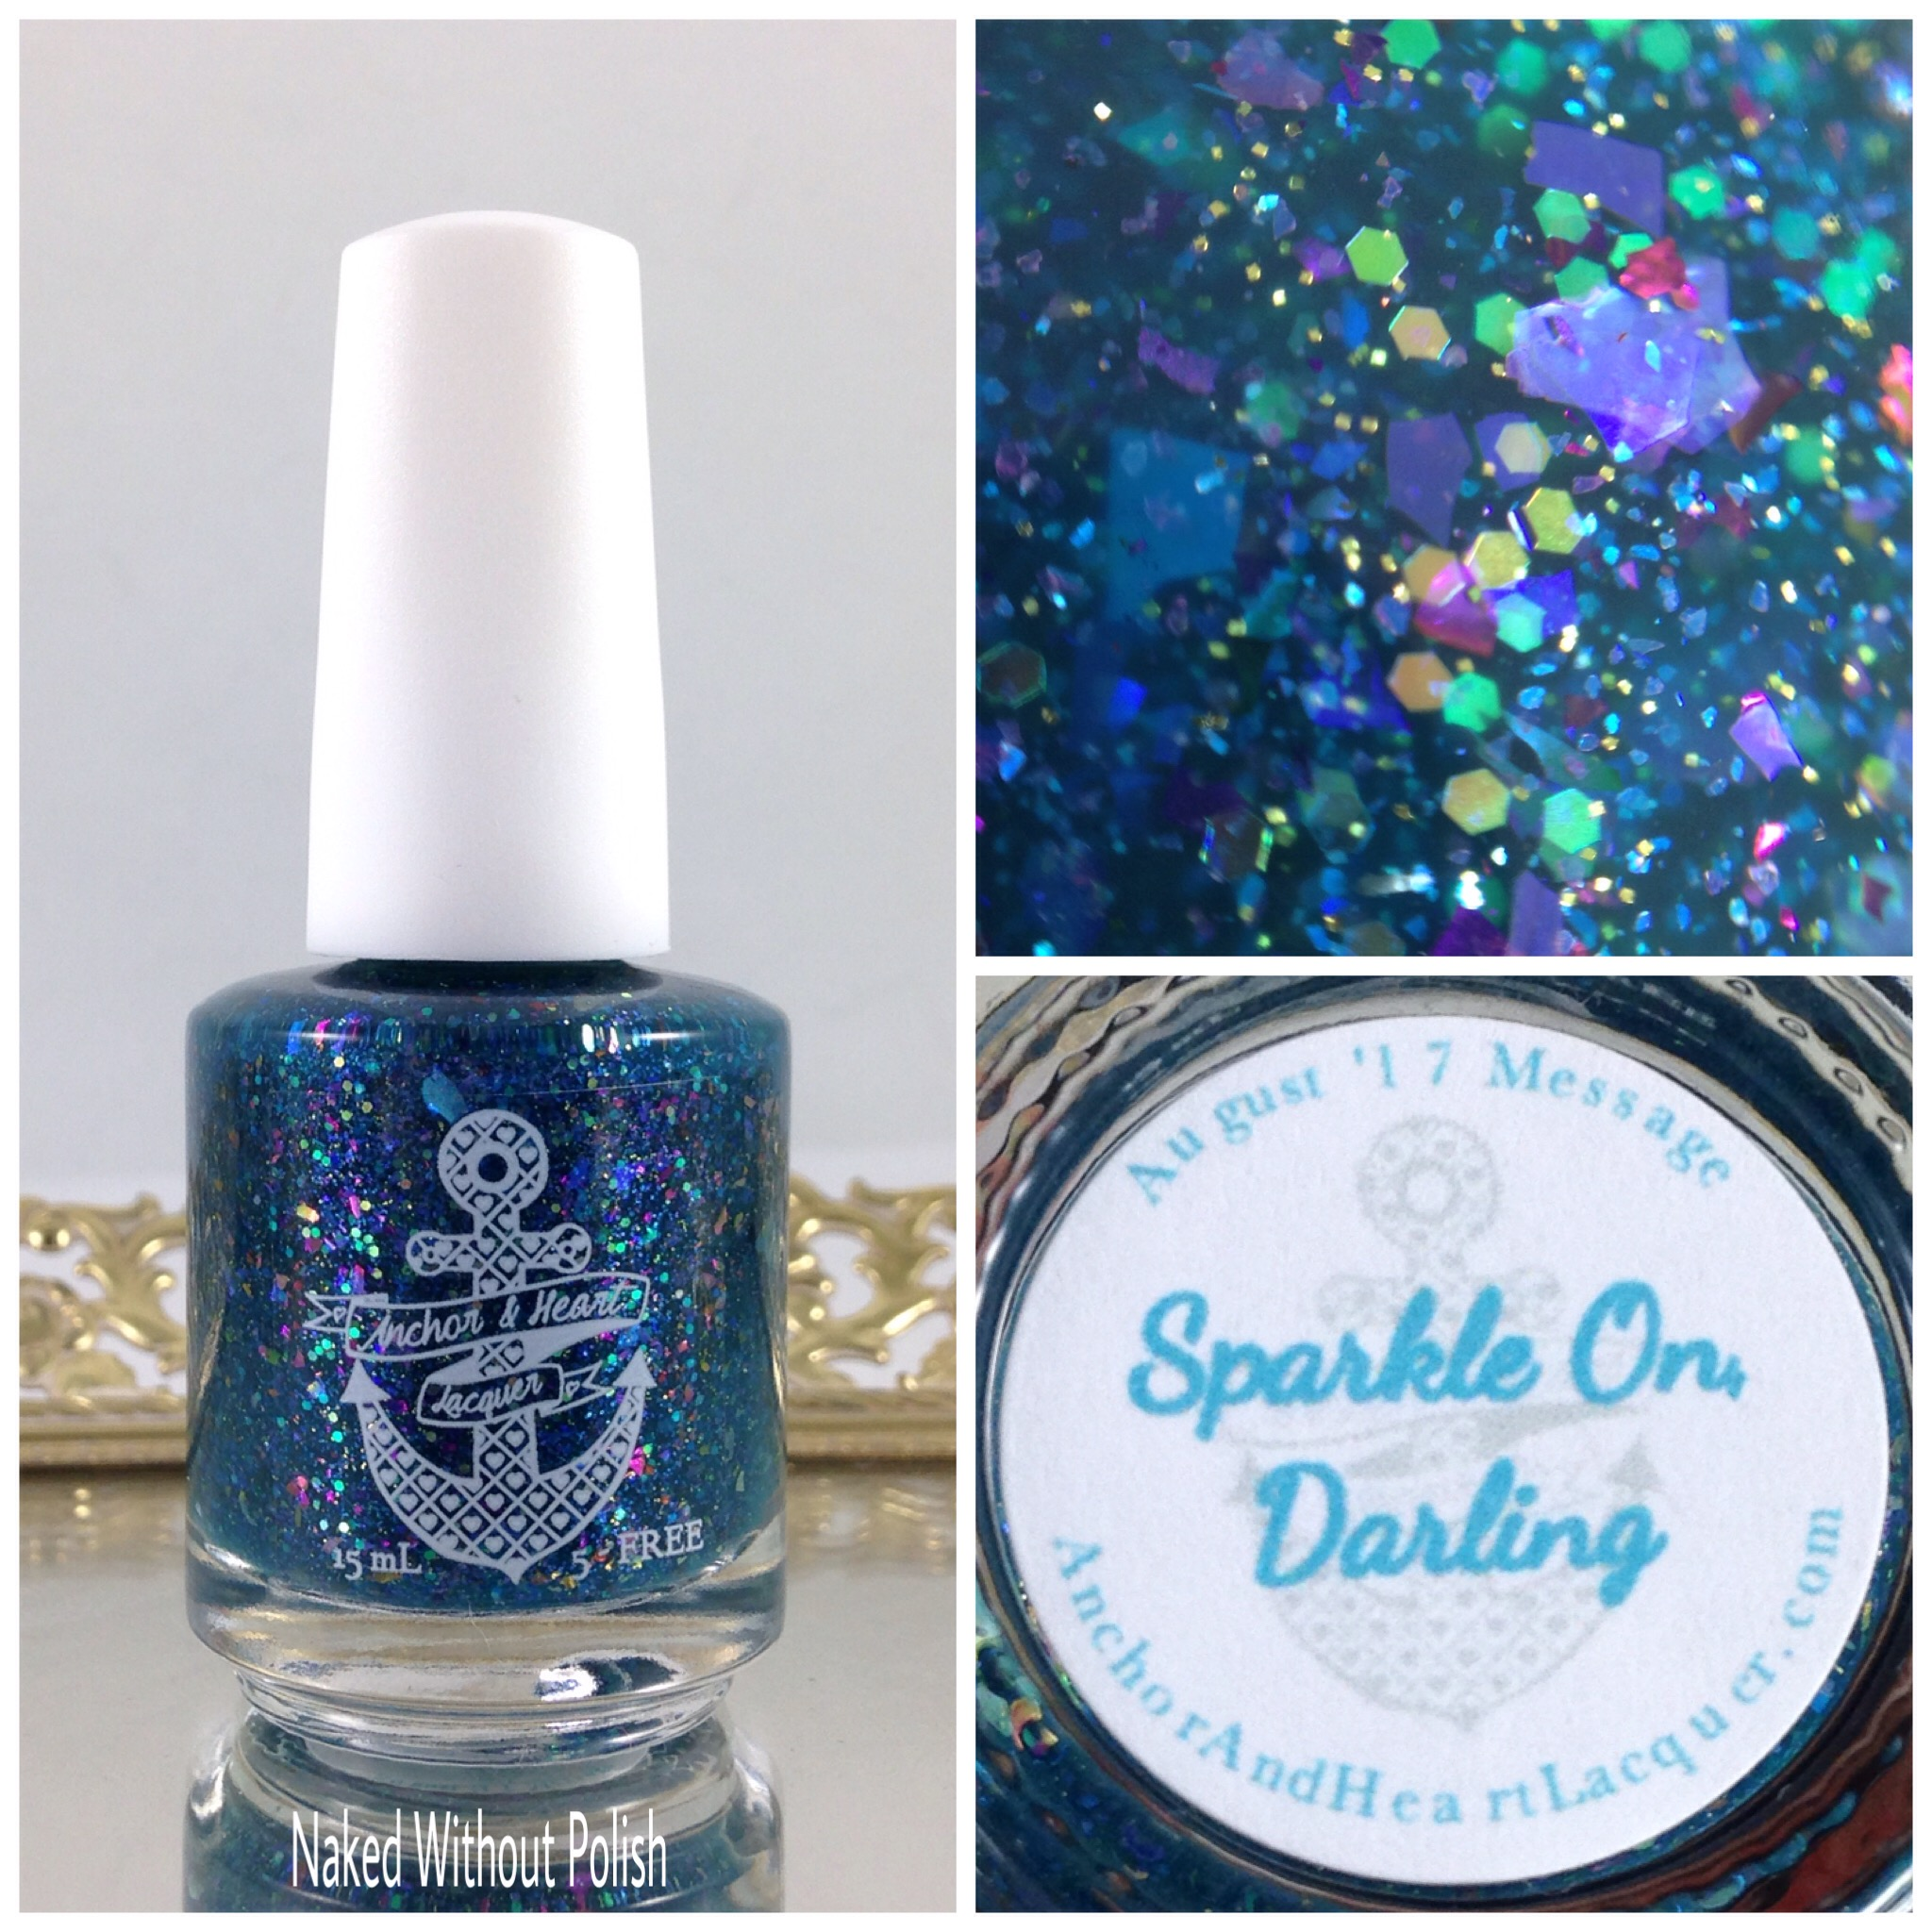 Anchor-and-Heart-Lacquer-Sparkle-On-Darling-1